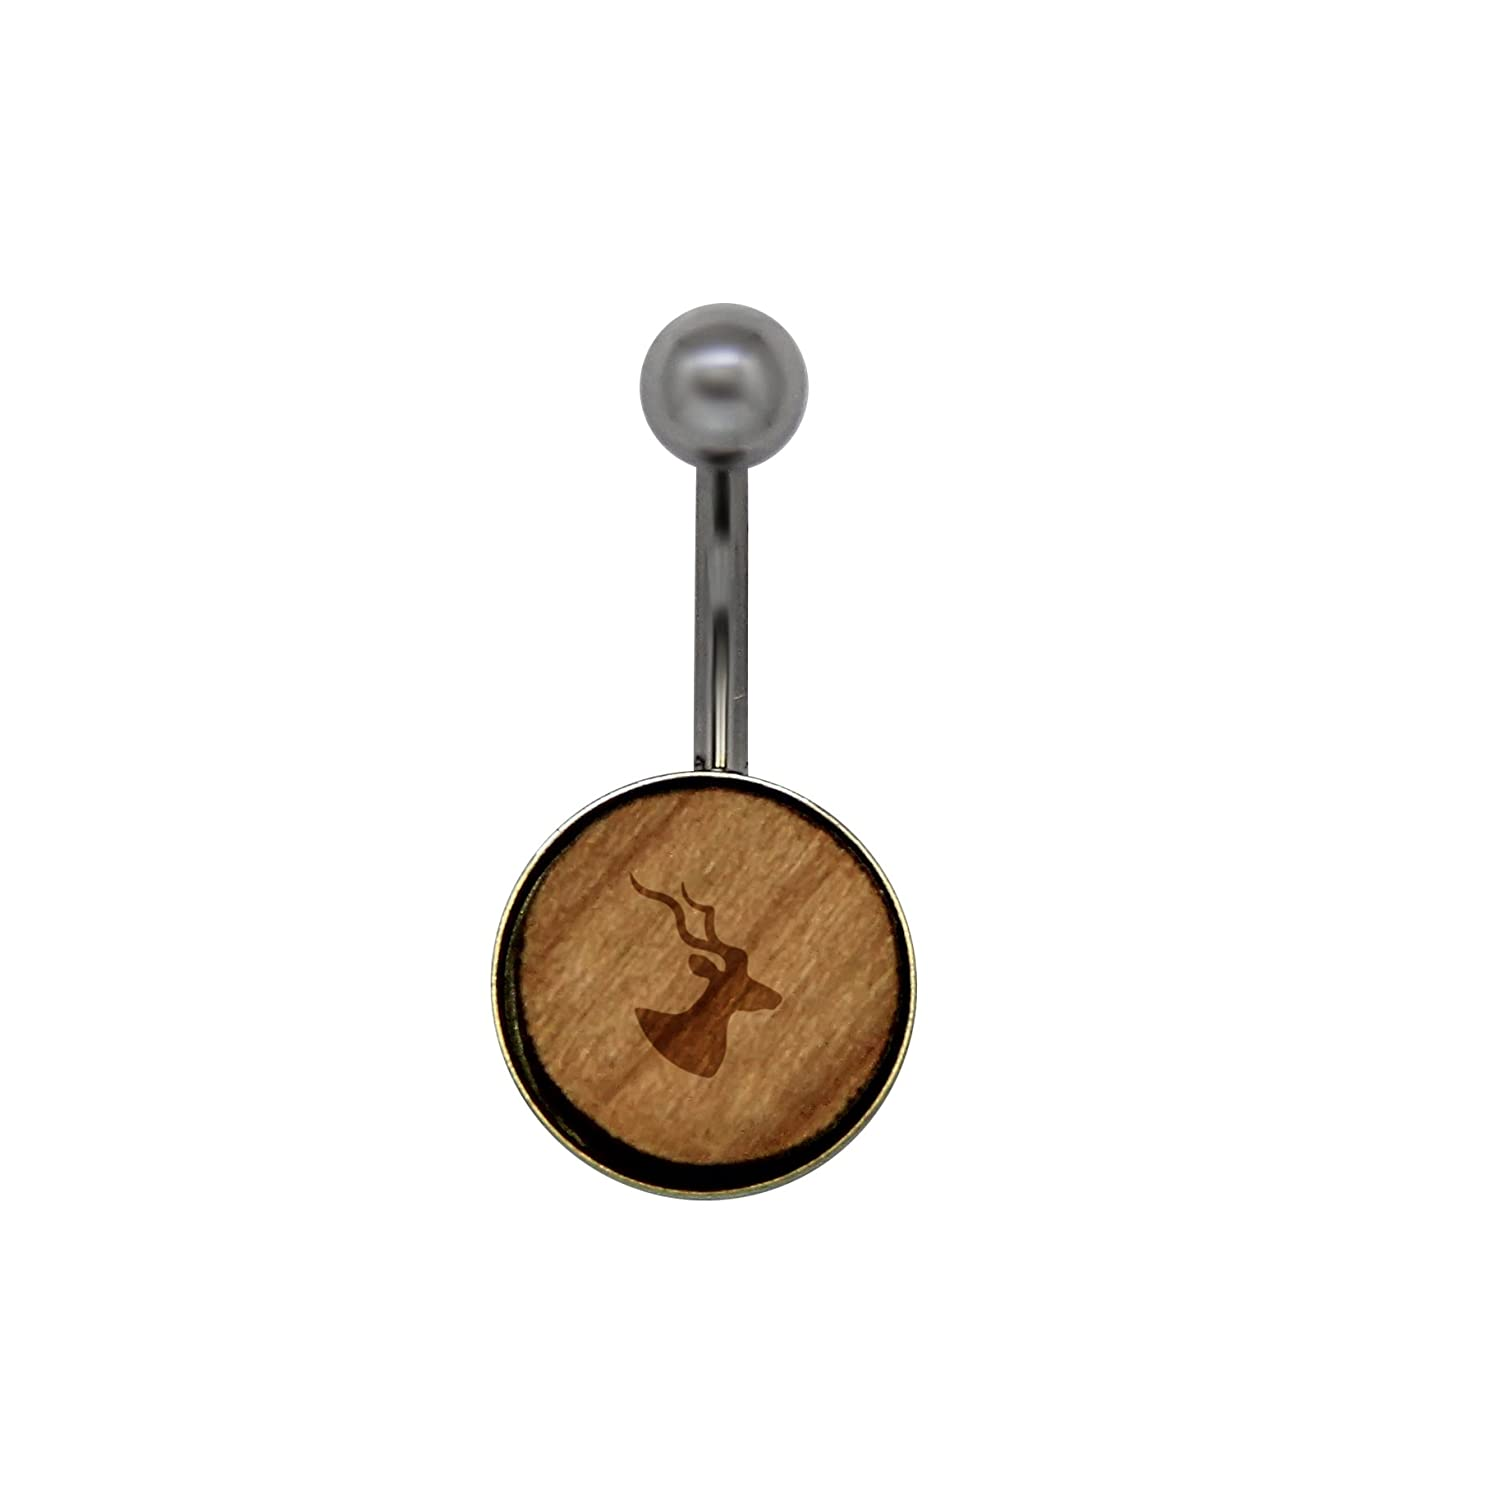 Rustic Wood Navel Ring with Laser Engraved Design Antelope Surgical Stainless Steel Belly Button Rings Size 14 Gauge Wooden Navel Ring